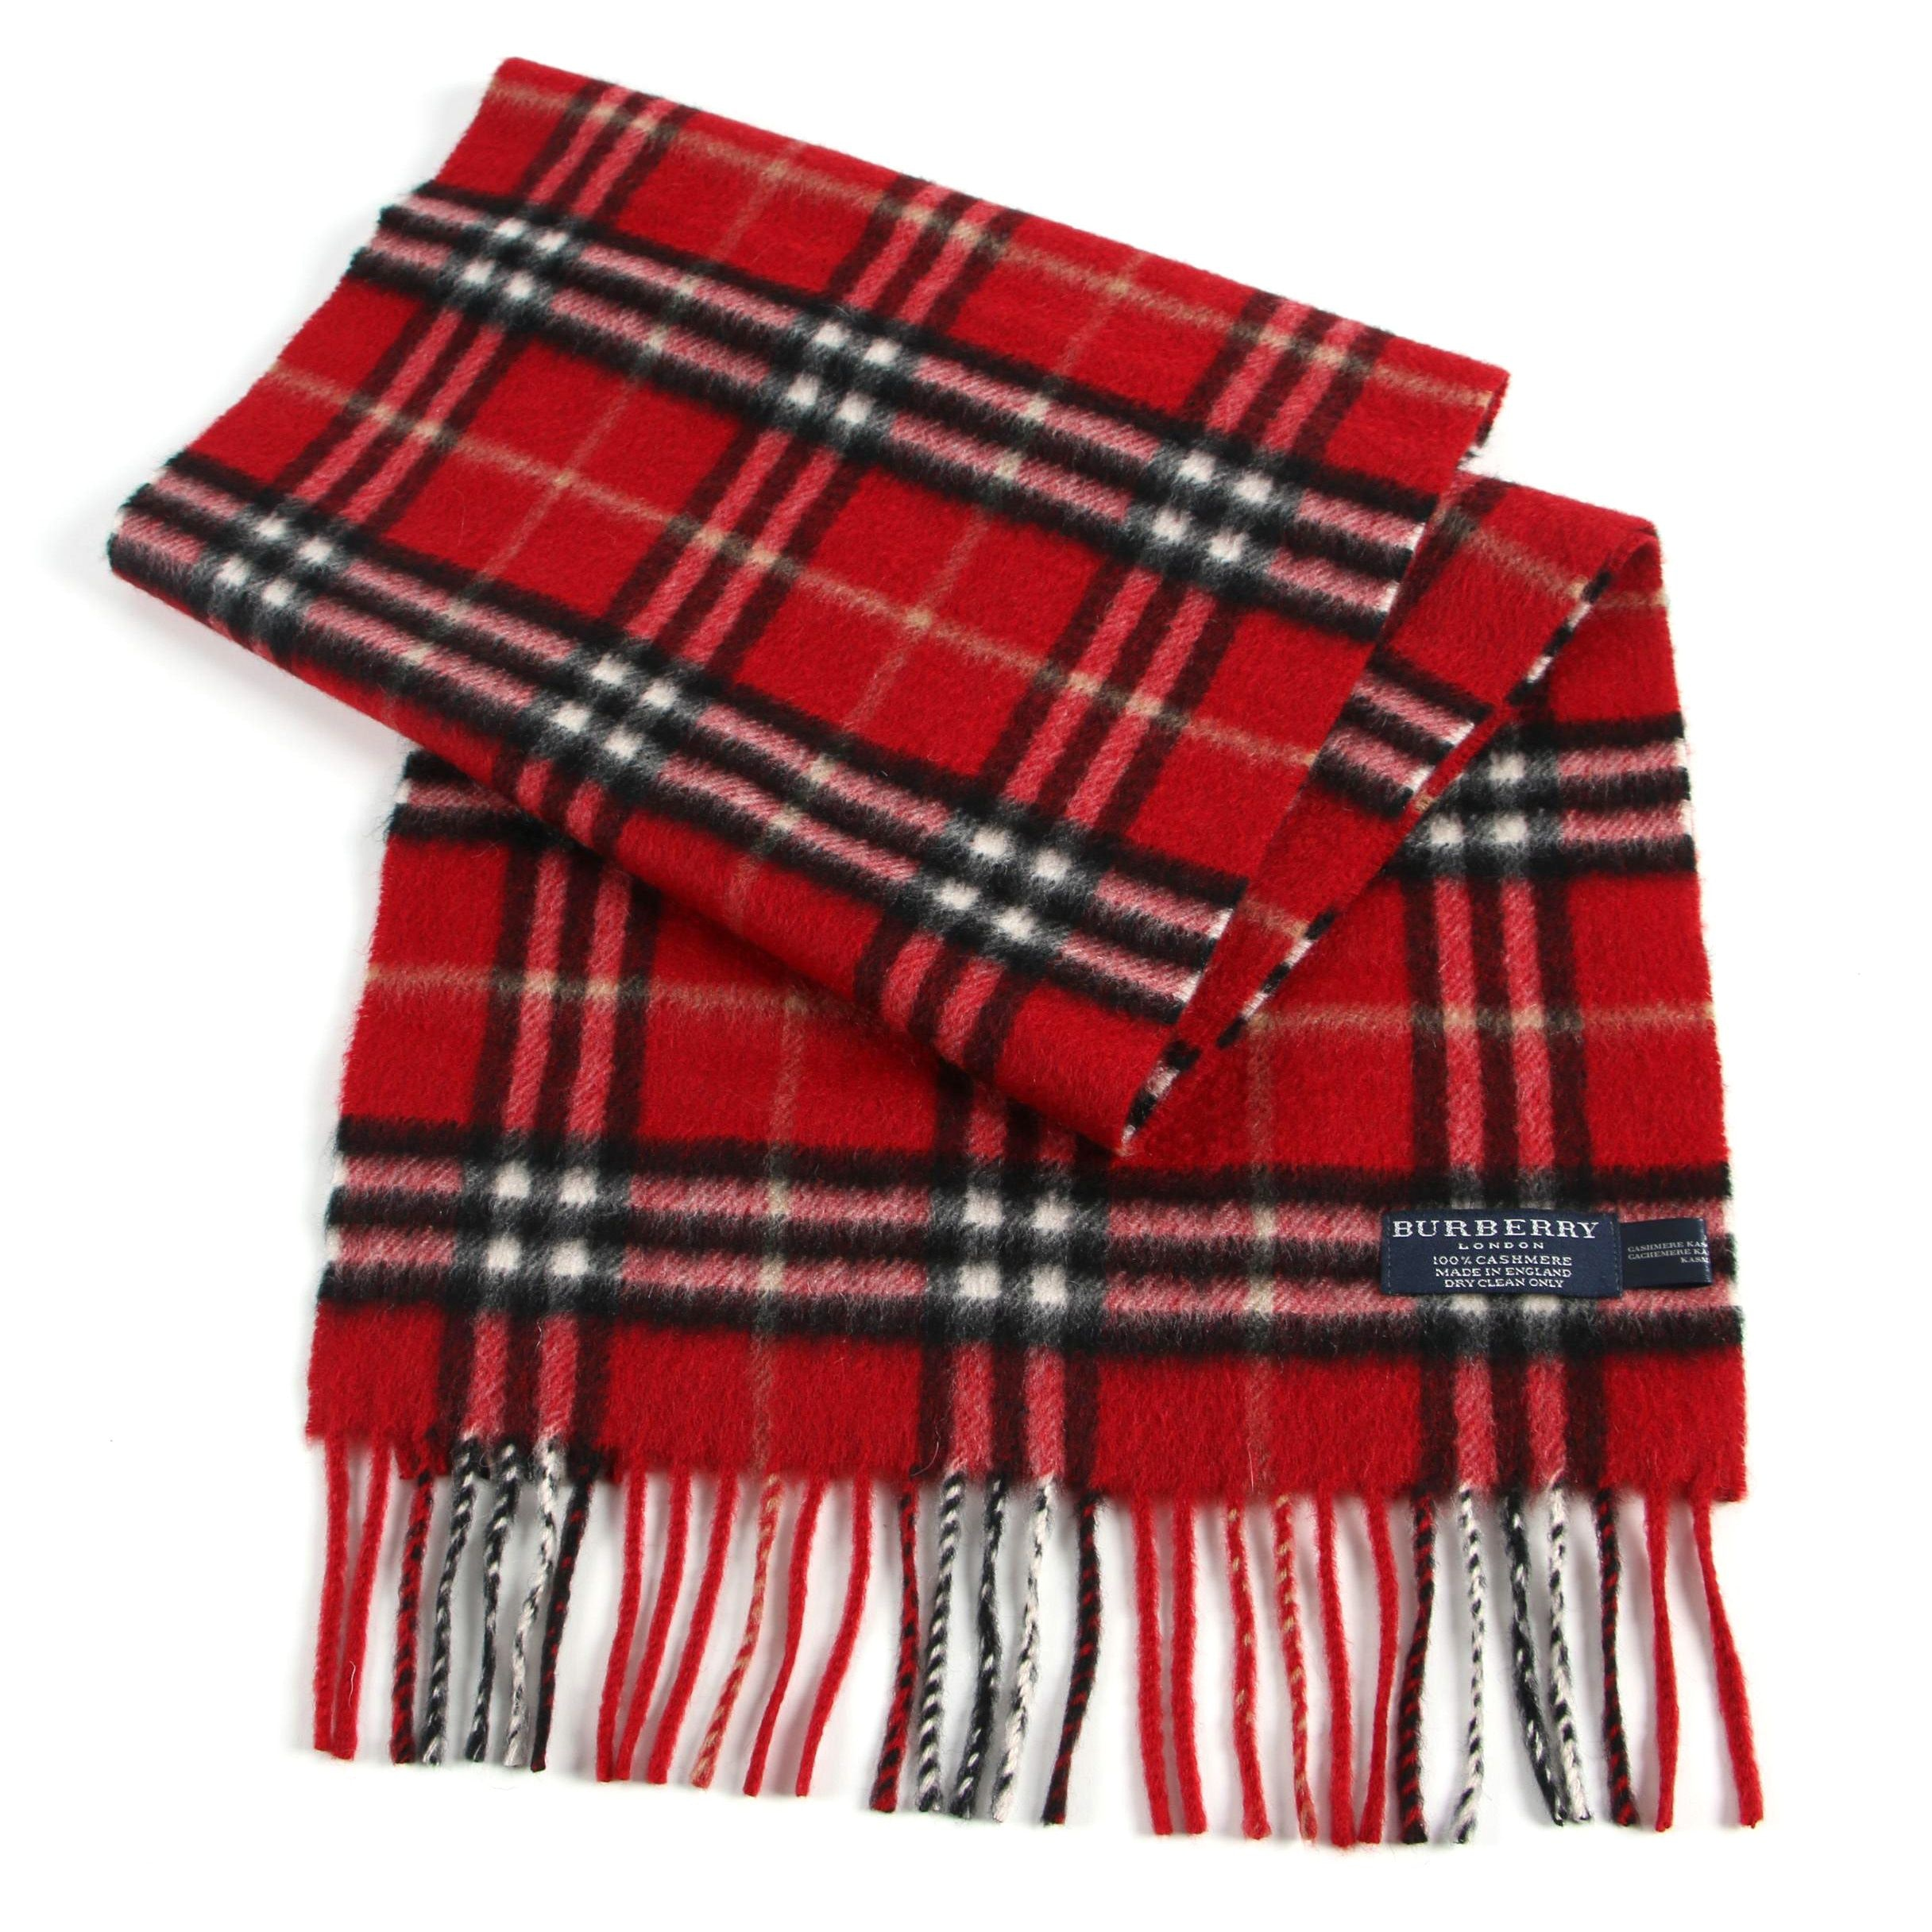 Burberry London Red and Black Plaid Cashmere Scarf